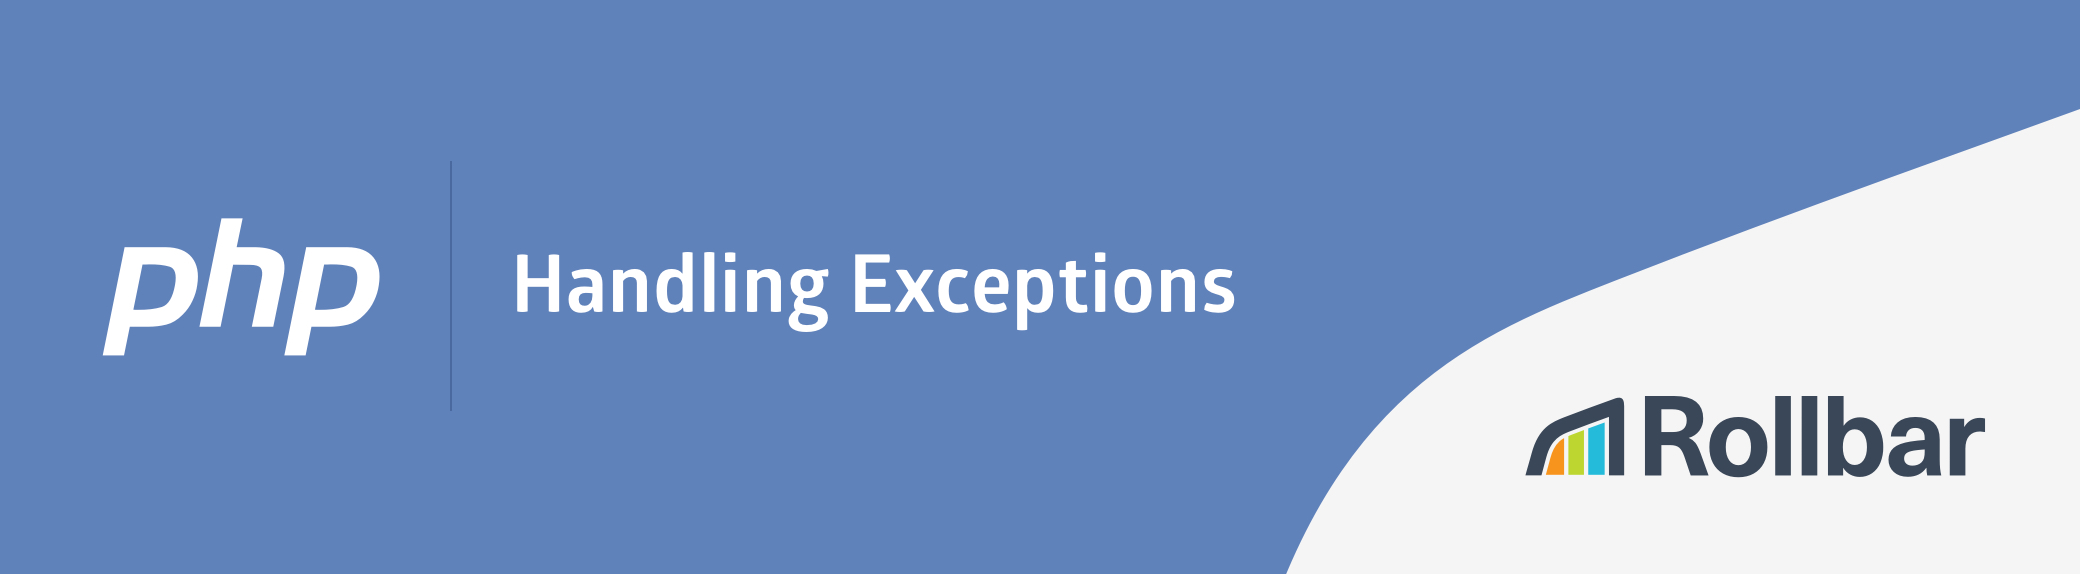 PHP handling exceptions